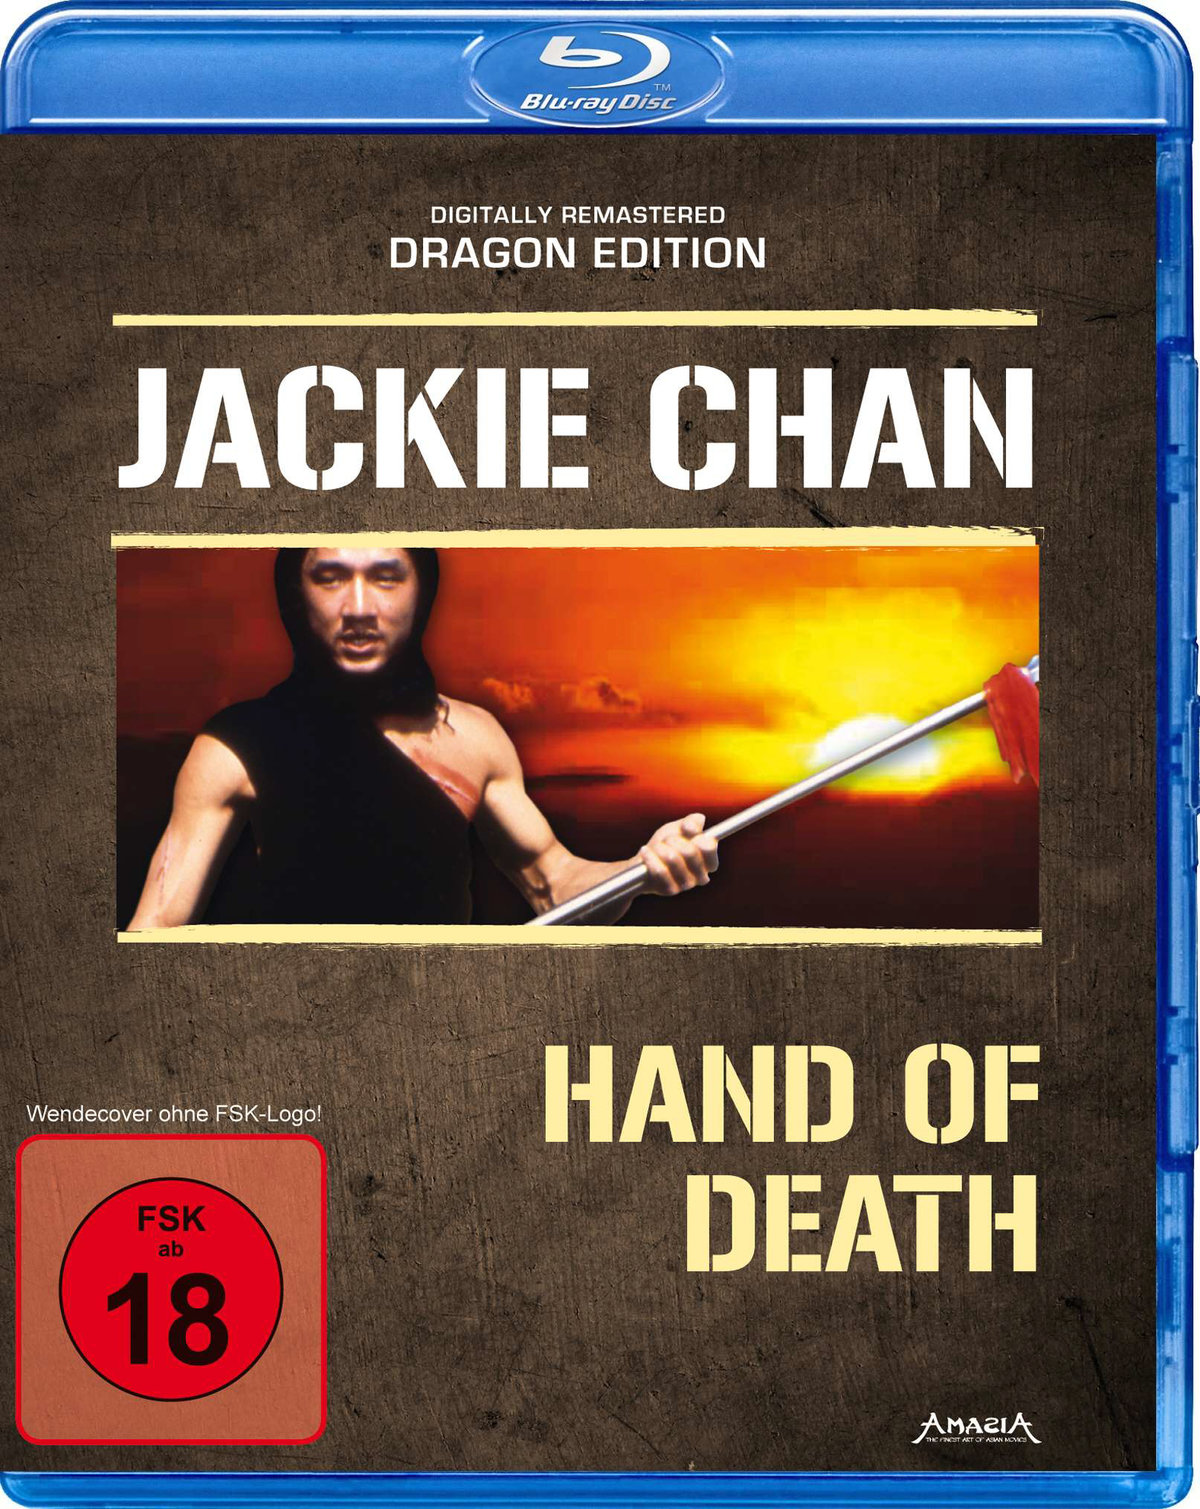 Jackie Chan - Hand of Death (Dragon Edition, Digitally Remastered)